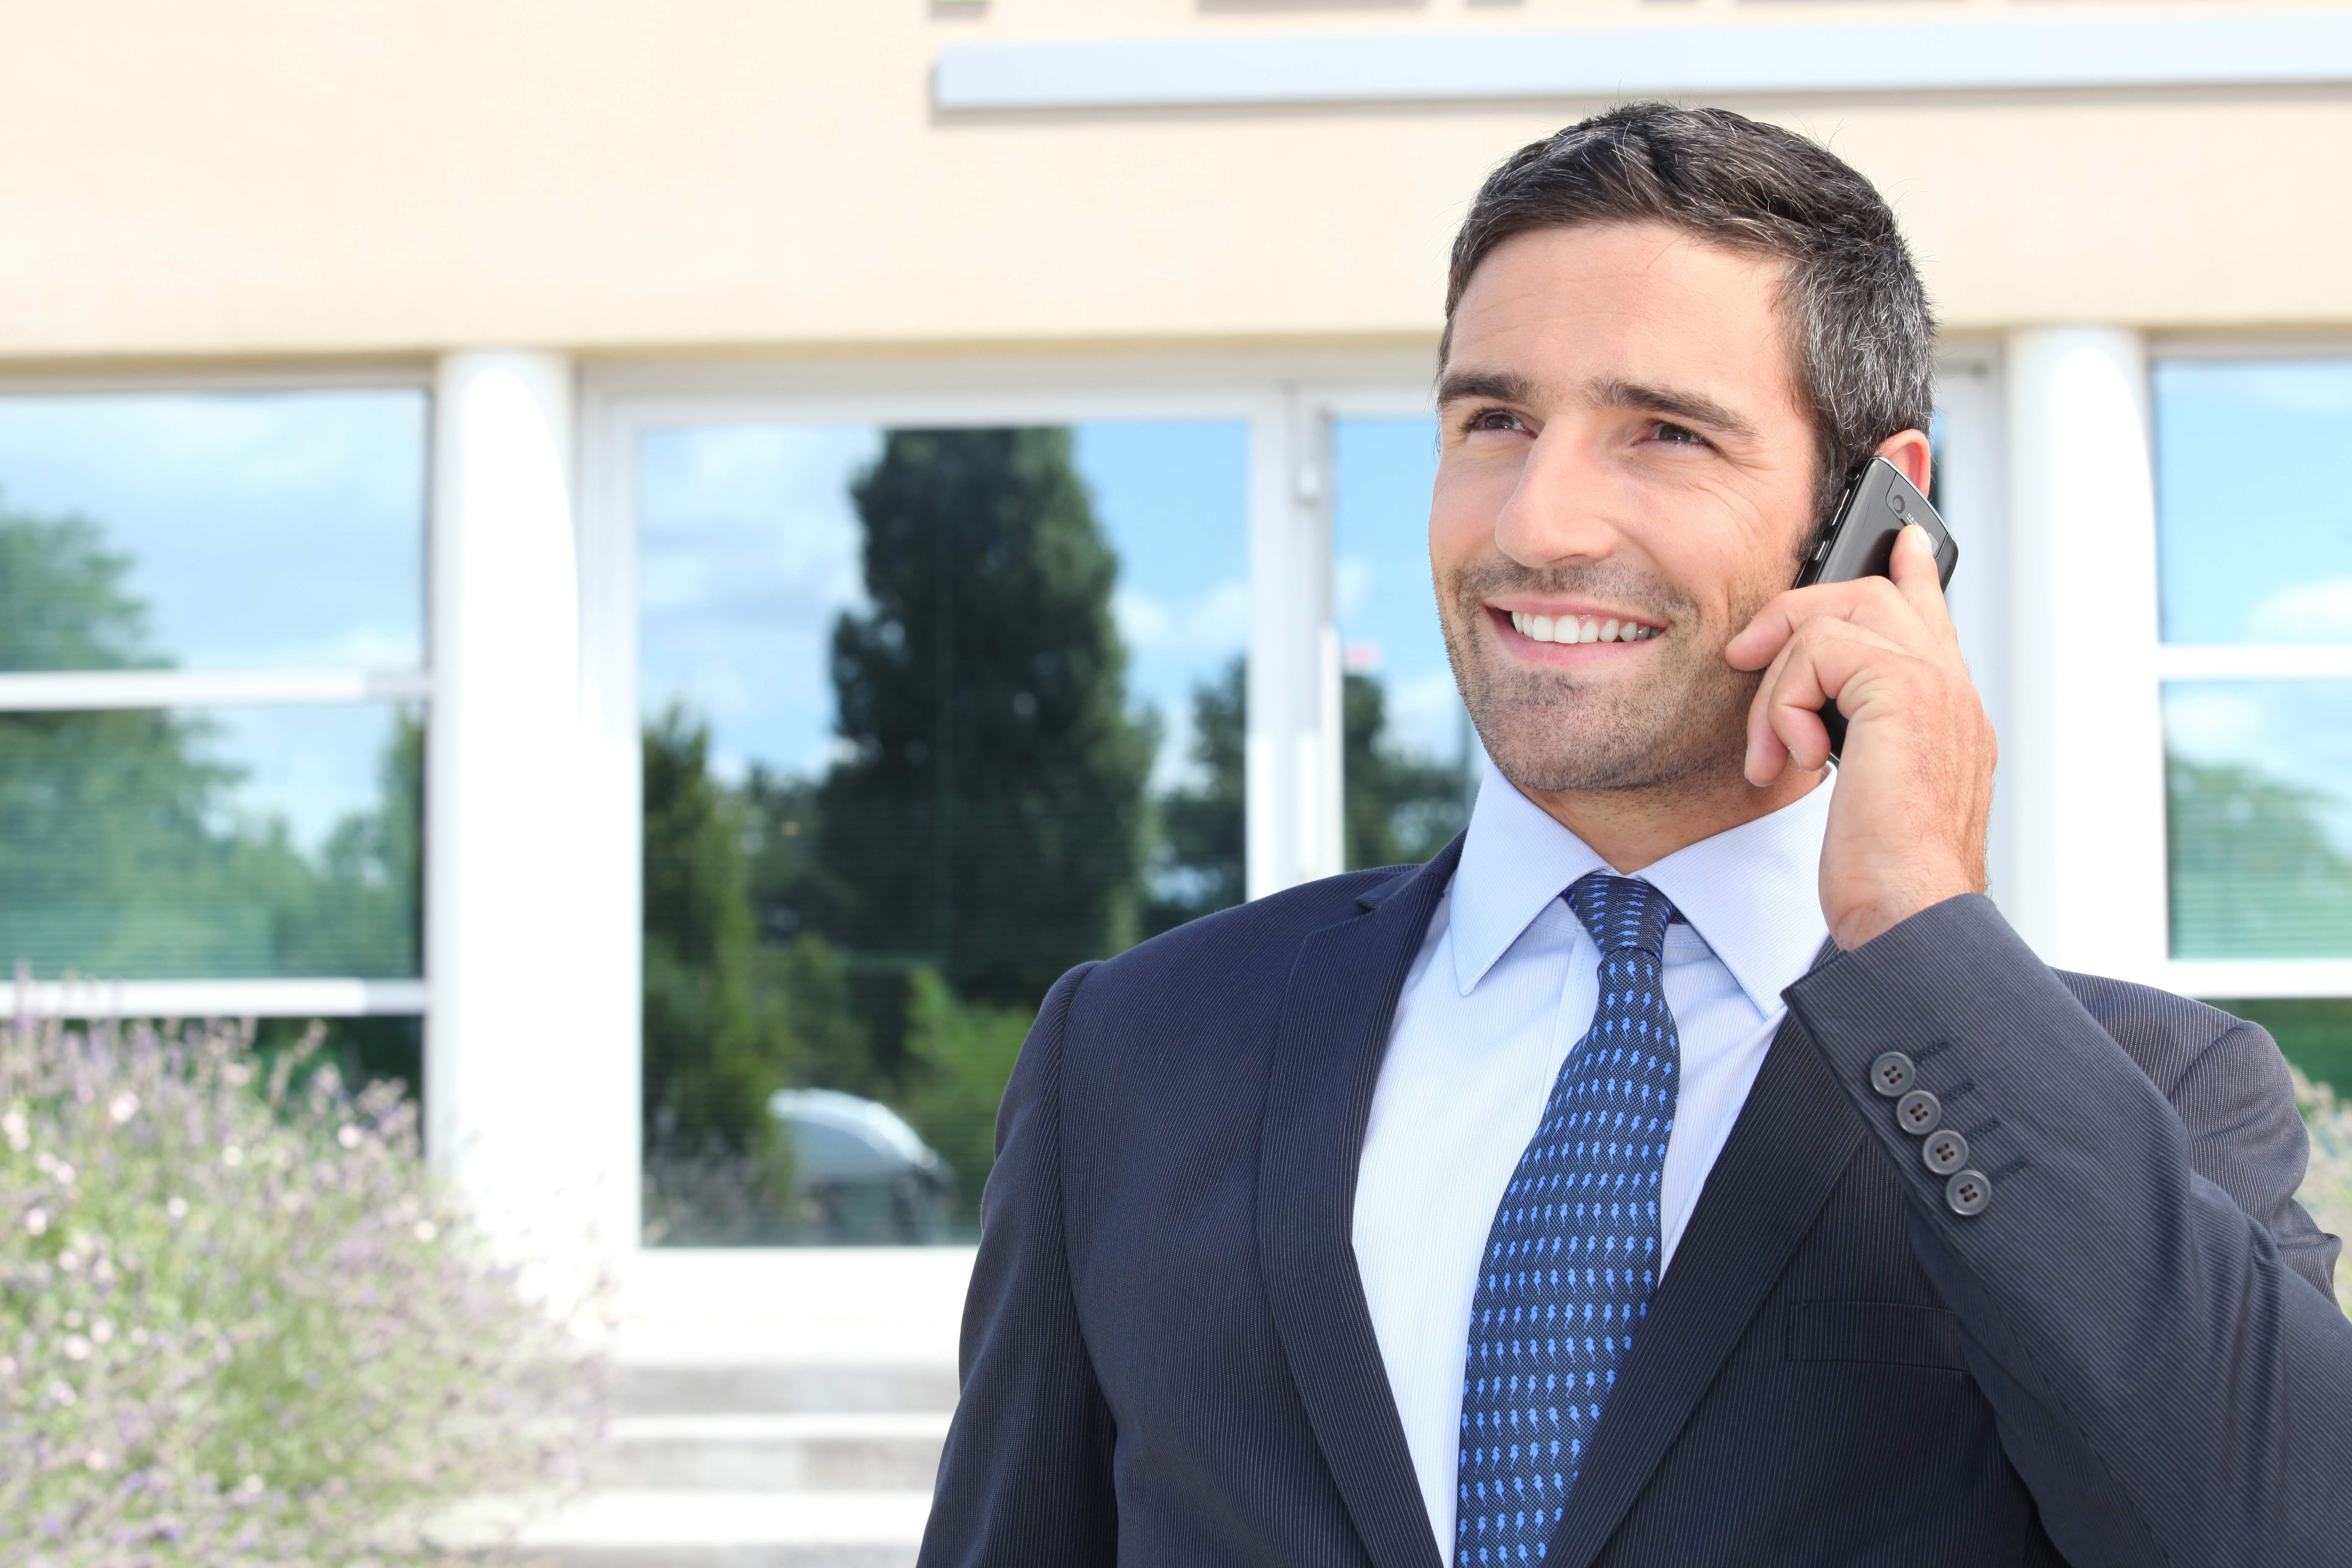 share and help your friends with their job search - How To Prepare For A Phone Interview